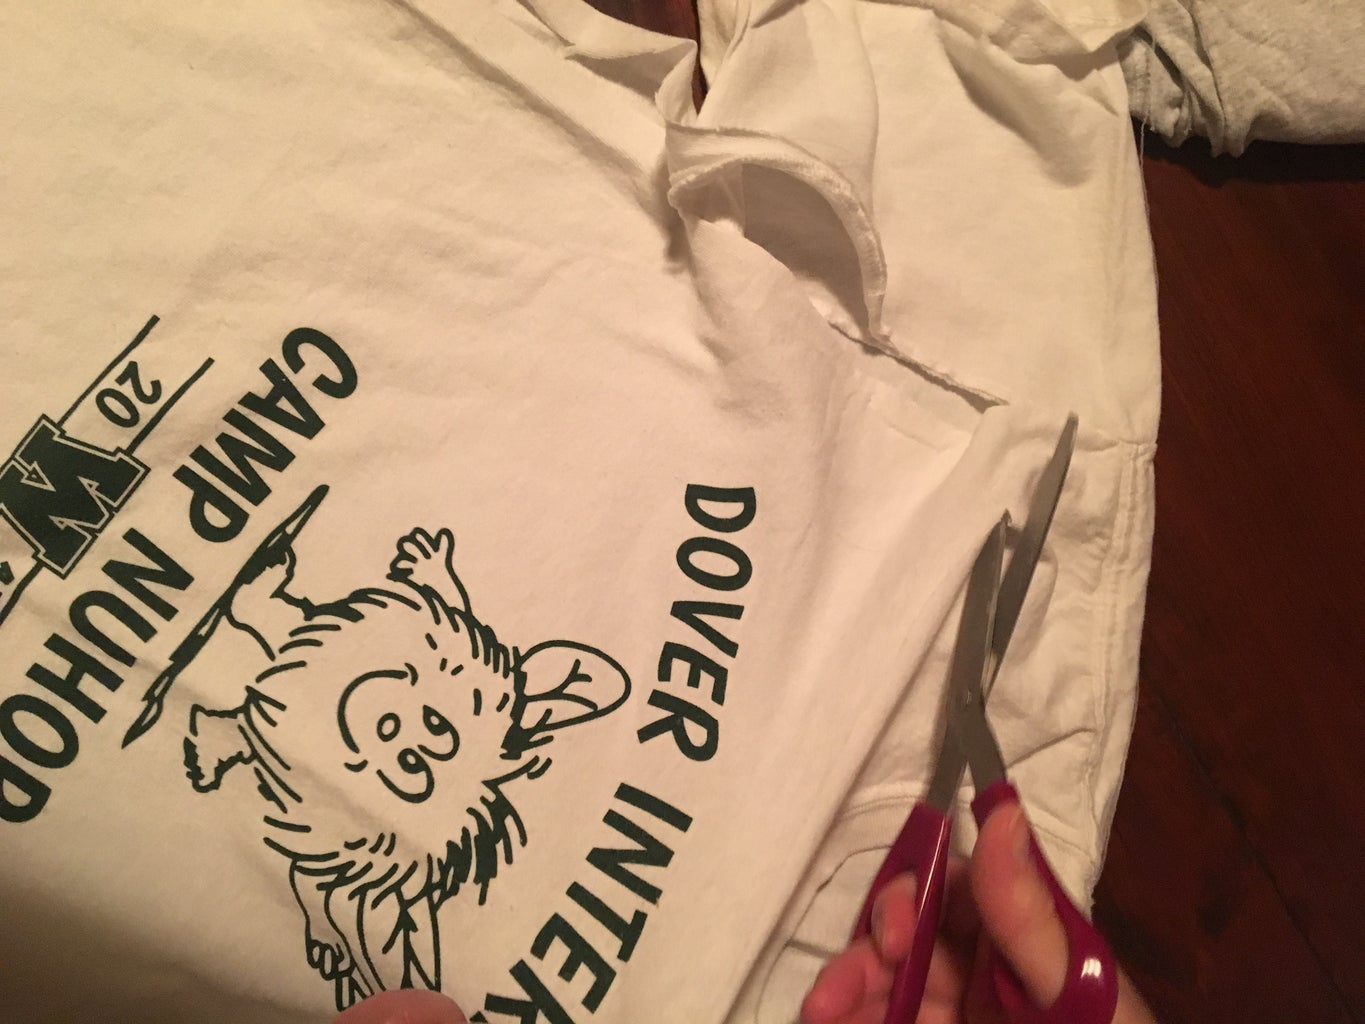 Cutting and Cropping the Shirts